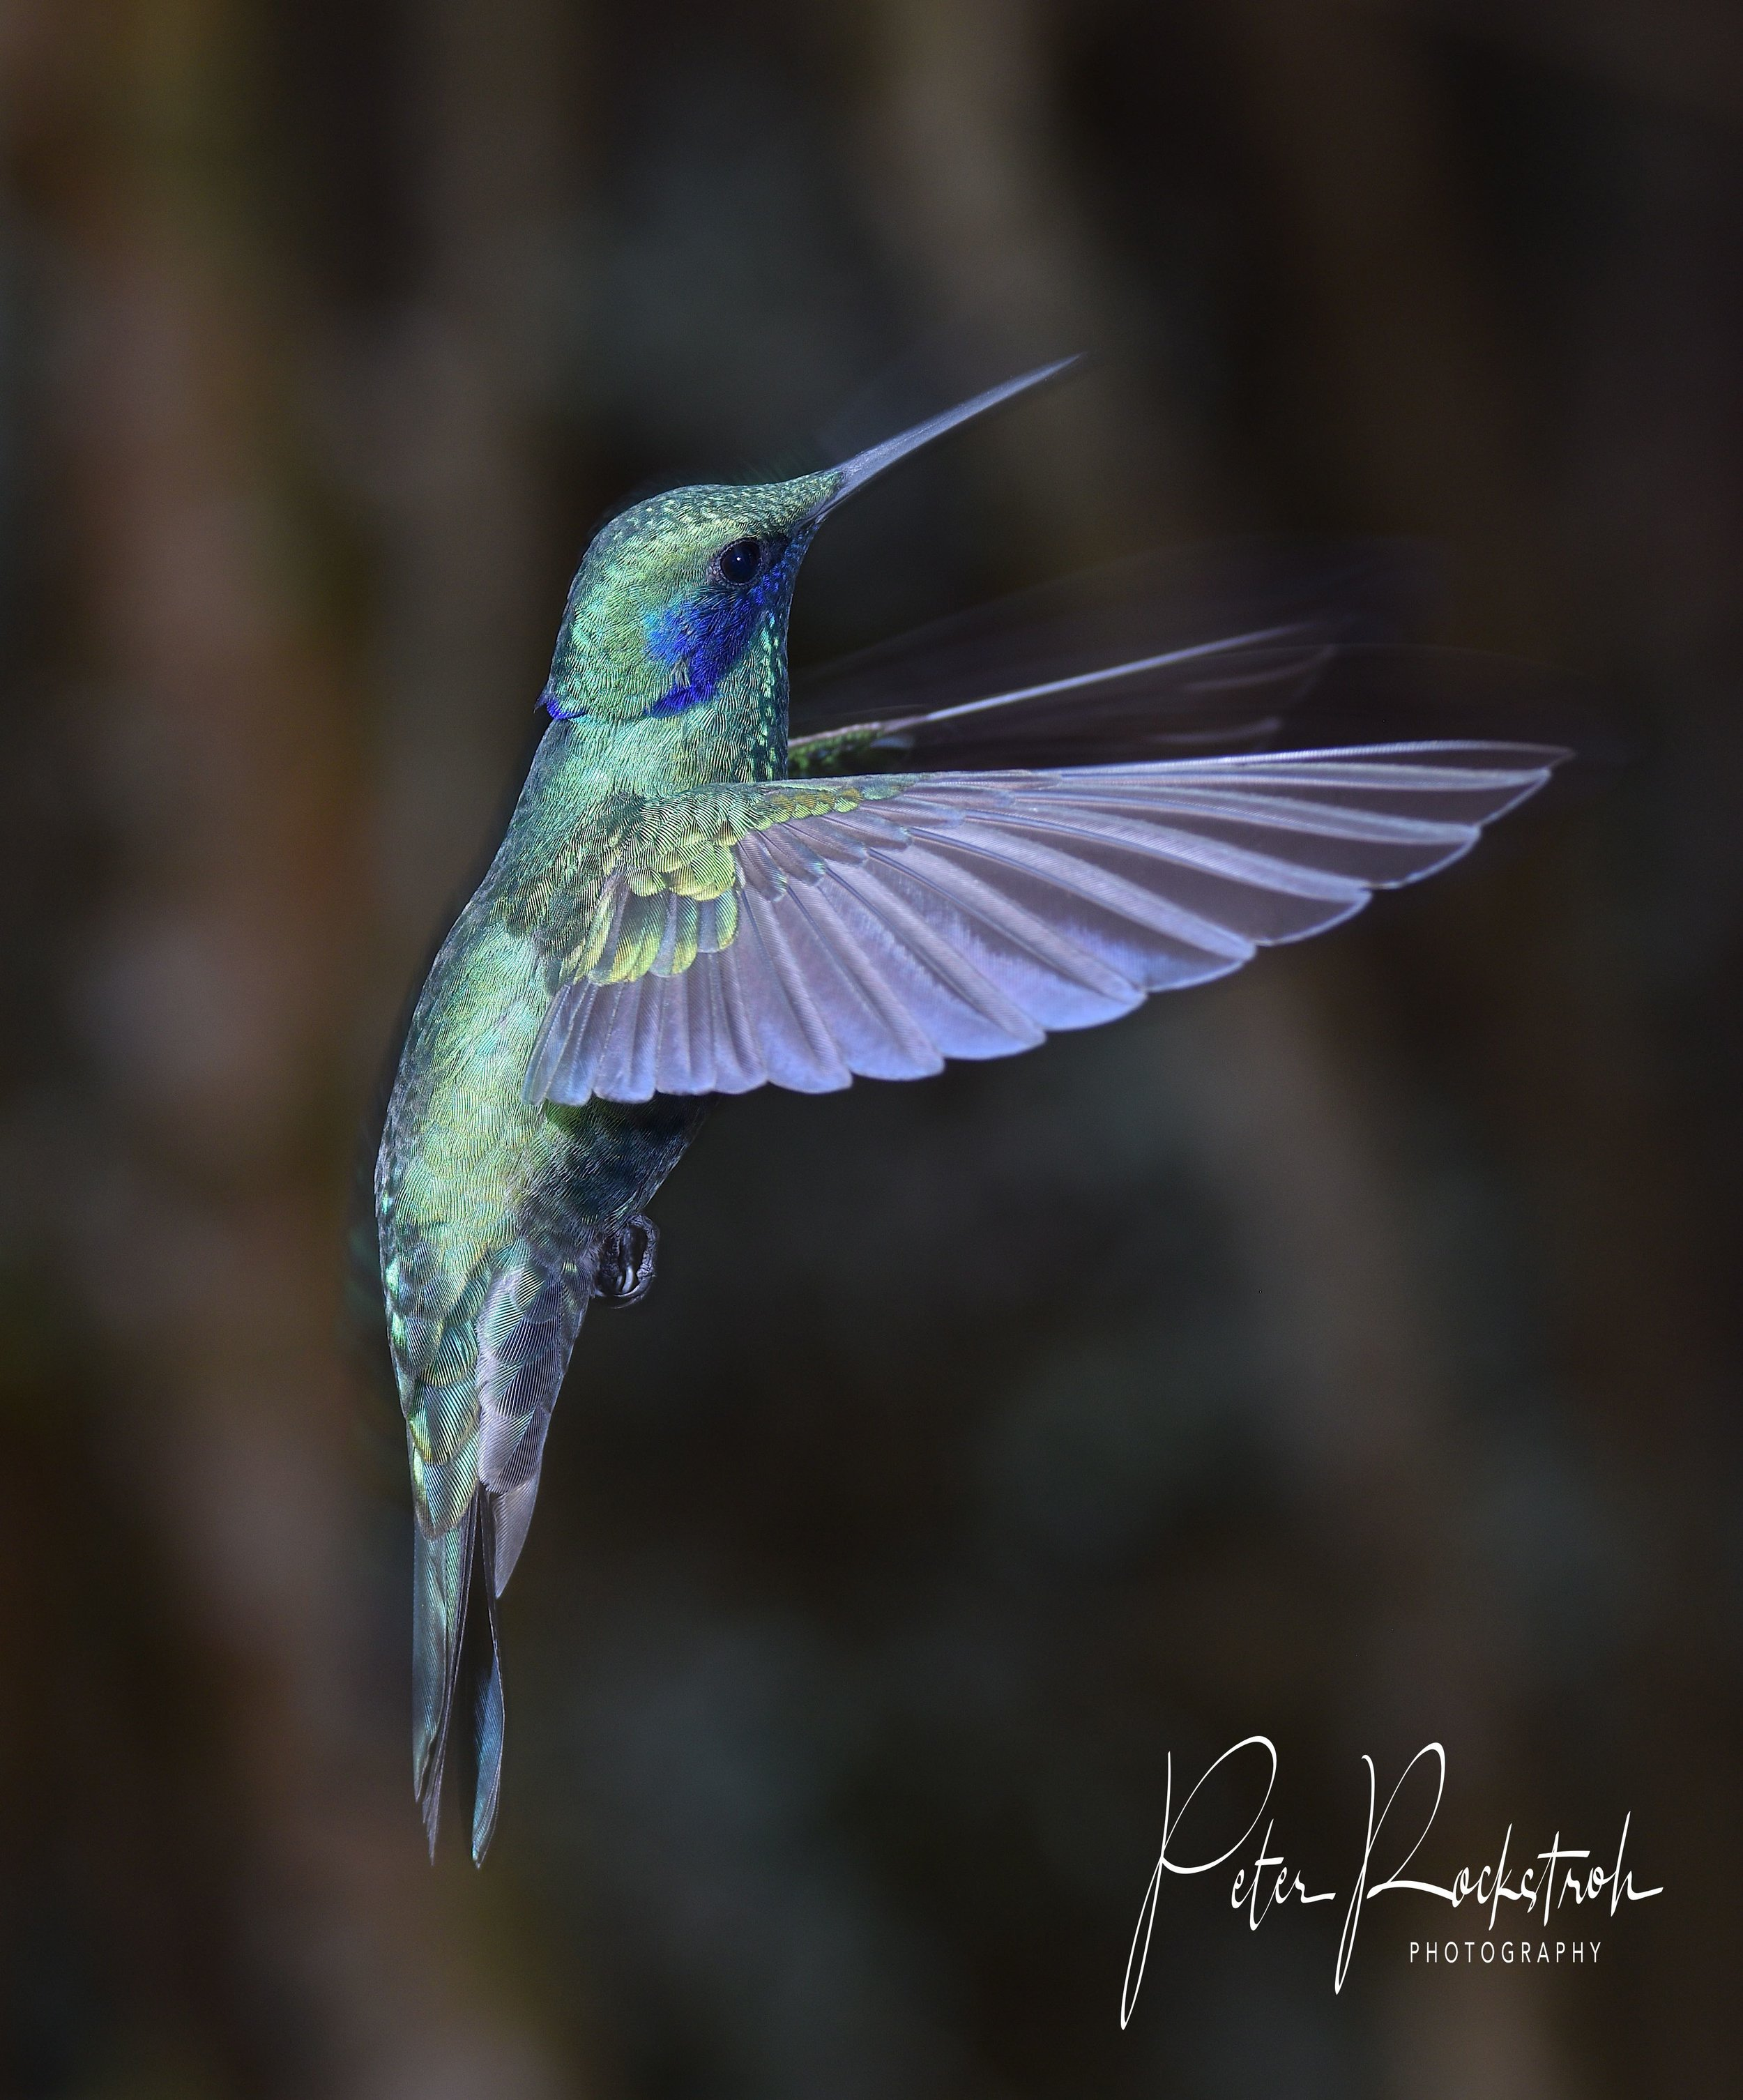 Male sparkling violet ear,  Colibri coruscans,  showing lots of nice details and color